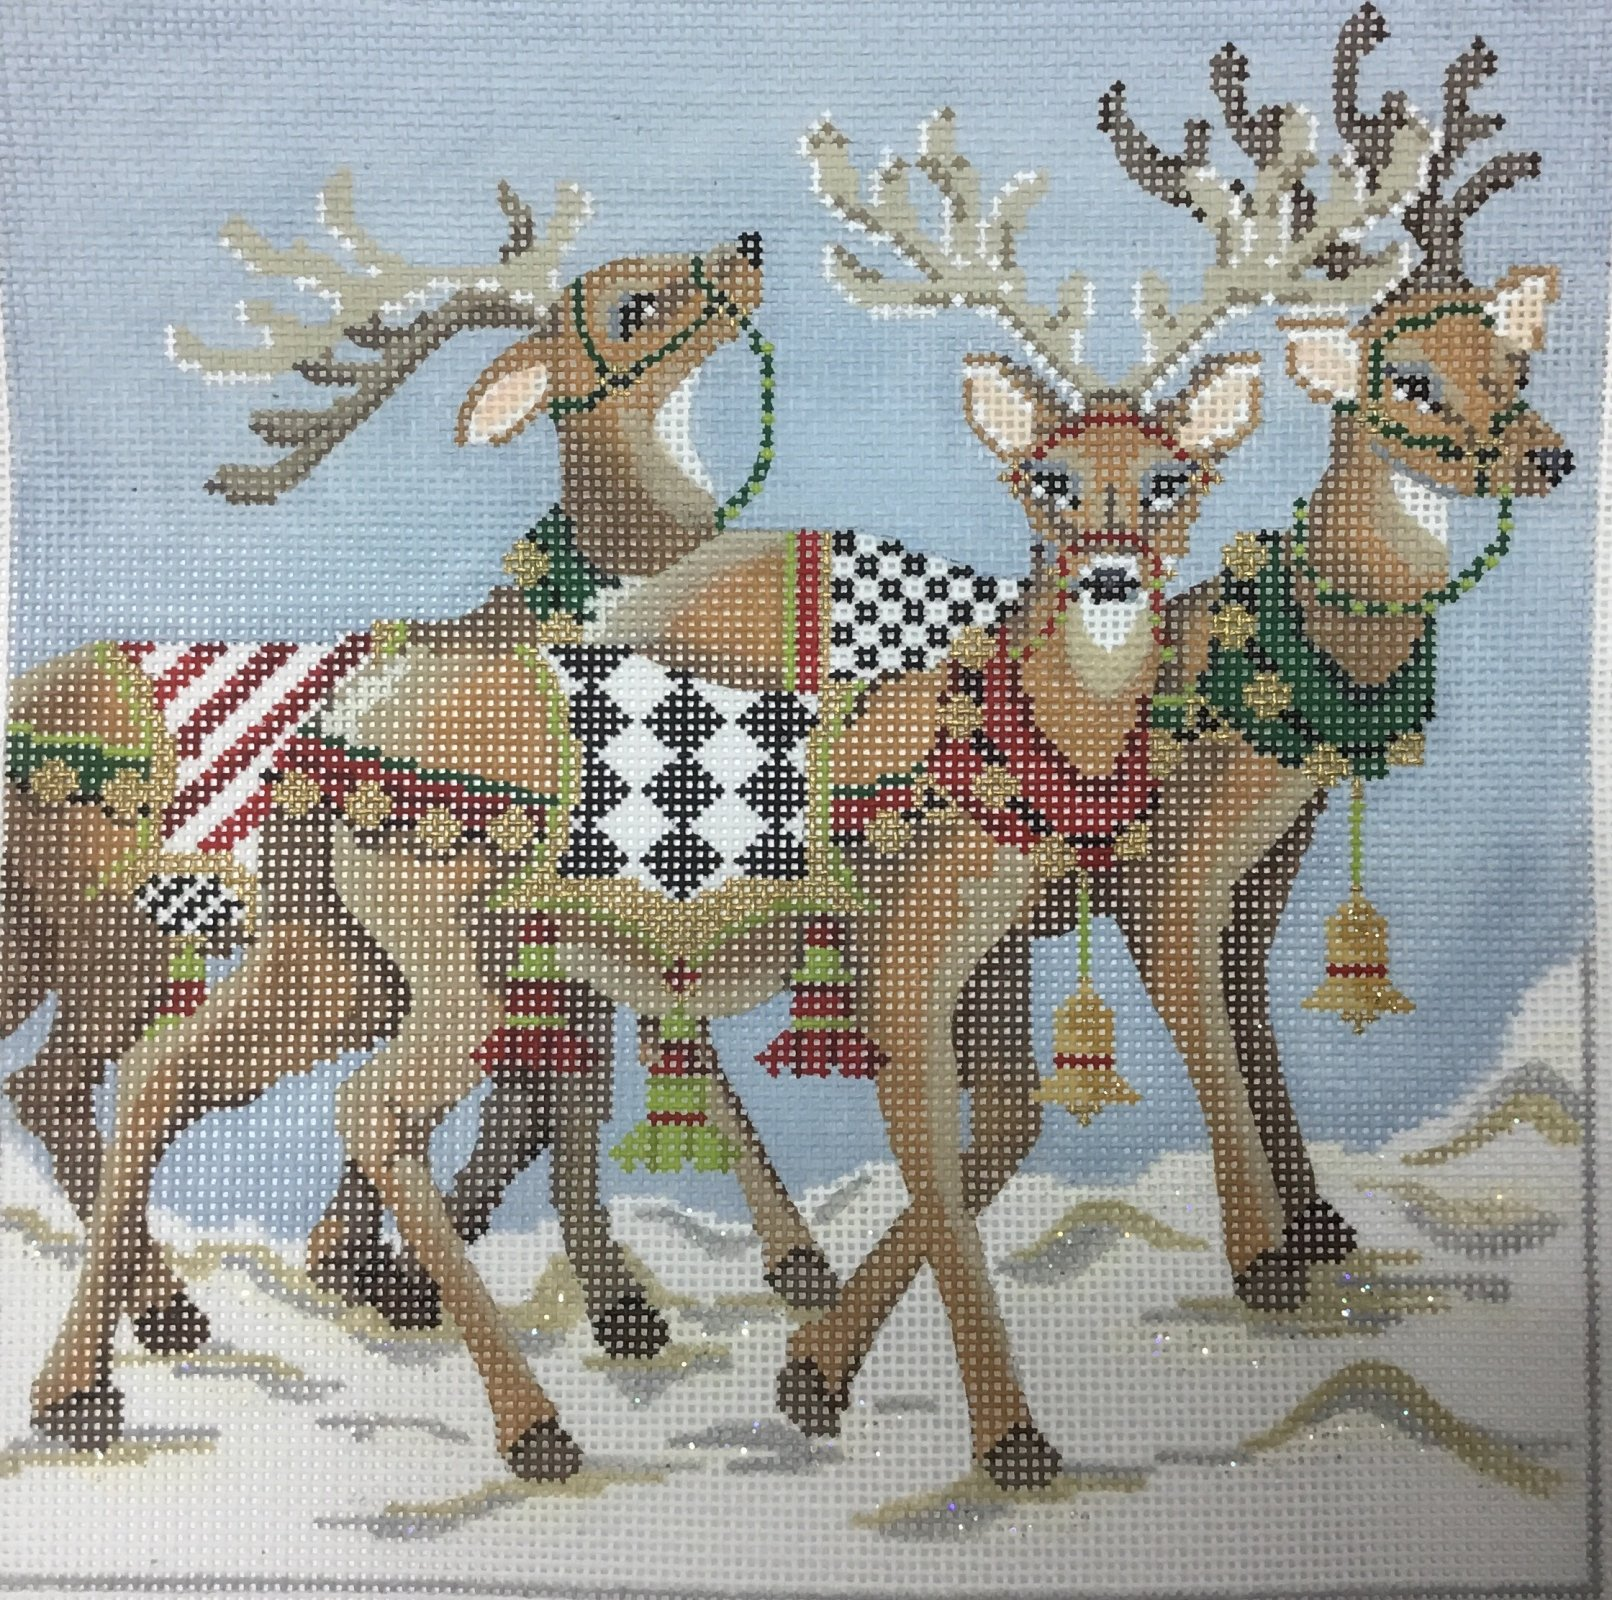 North Pole Reindeer,18 ct.,7 1/2x7 1/2